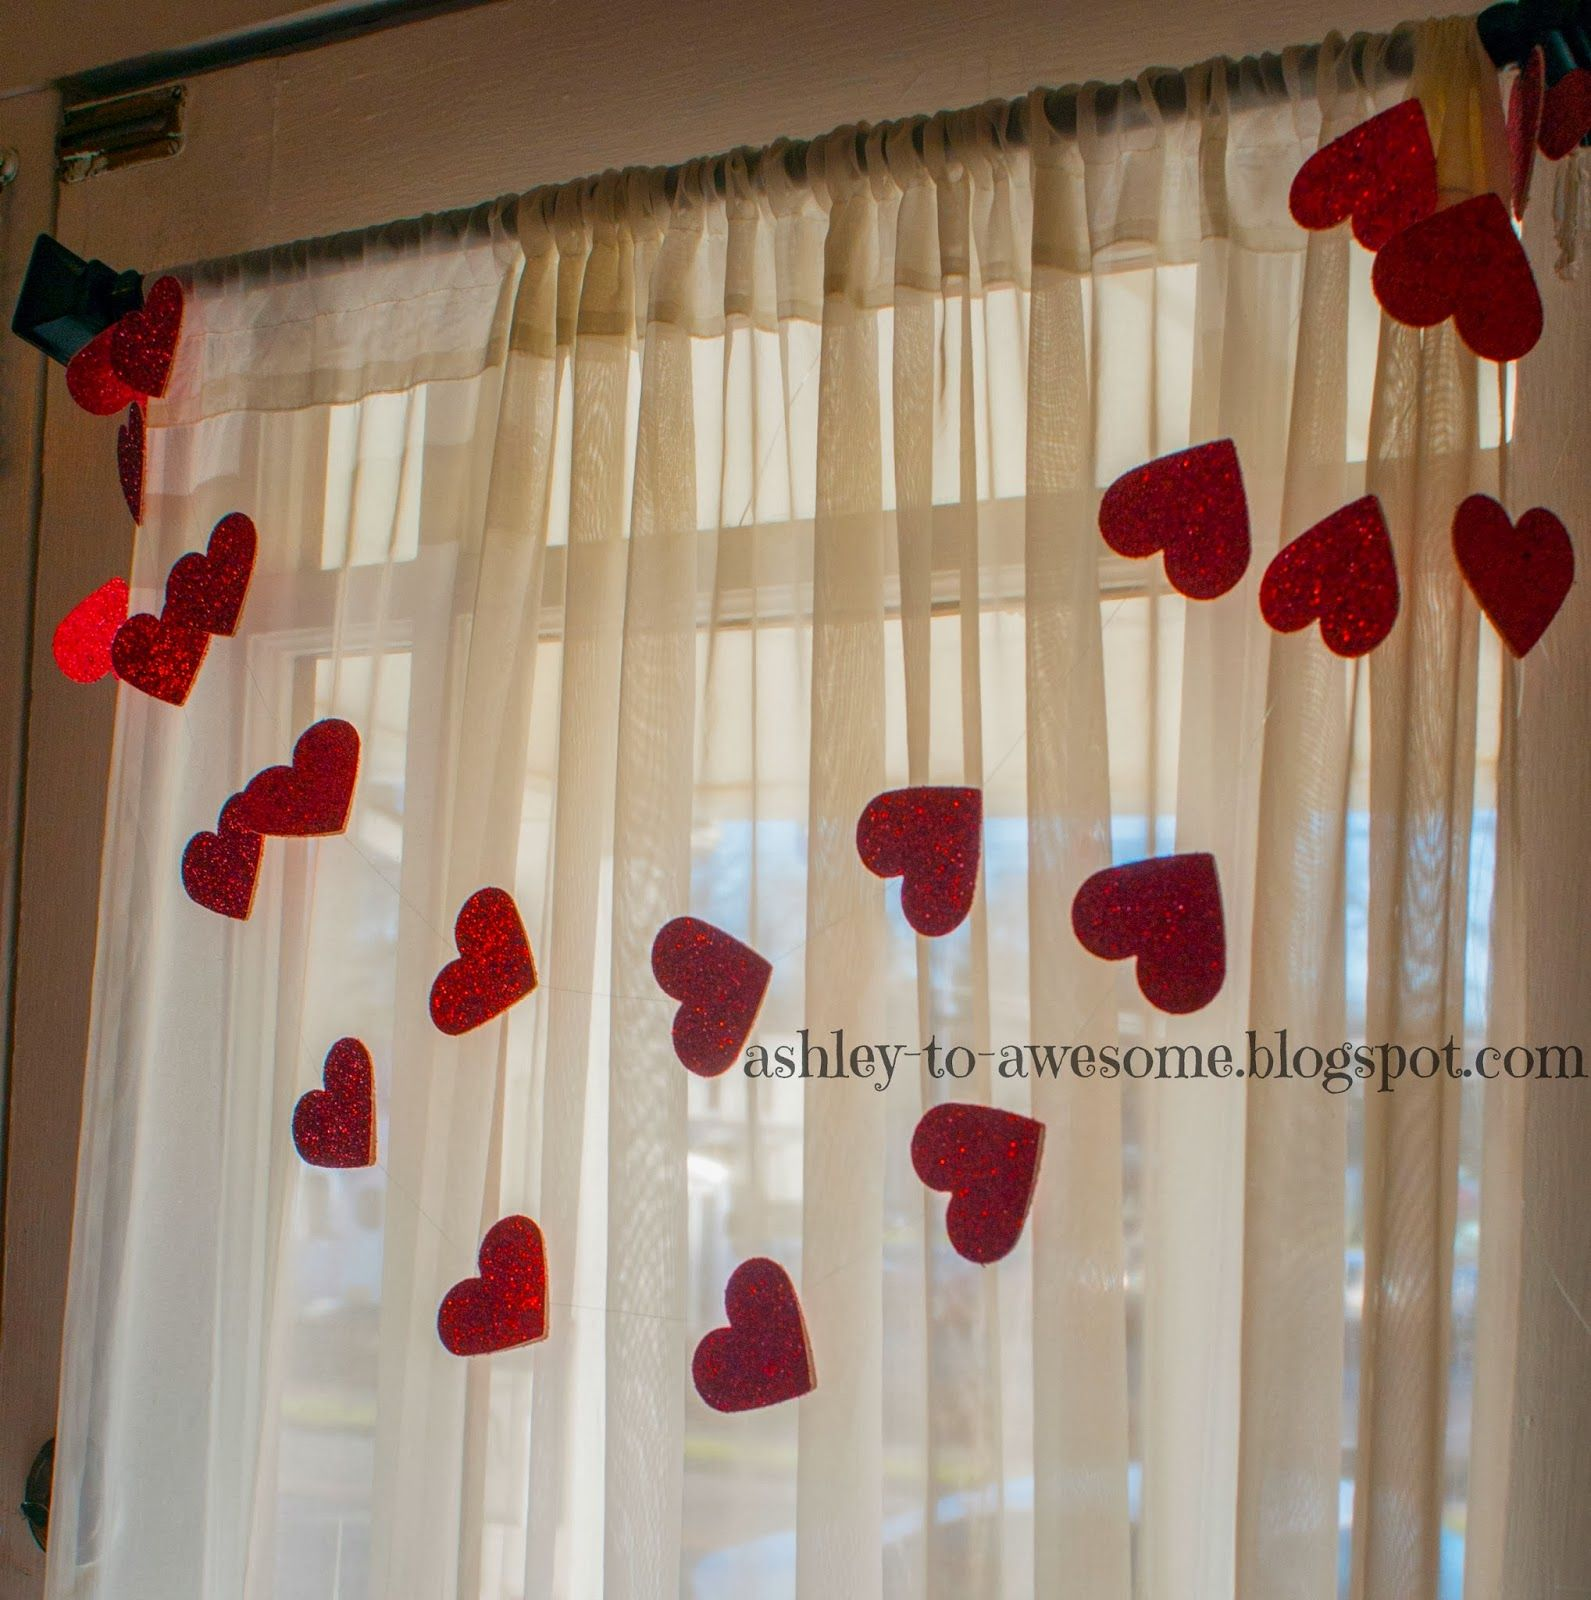 From Ashley to Awesome: DIY Heart Garland Tutorial